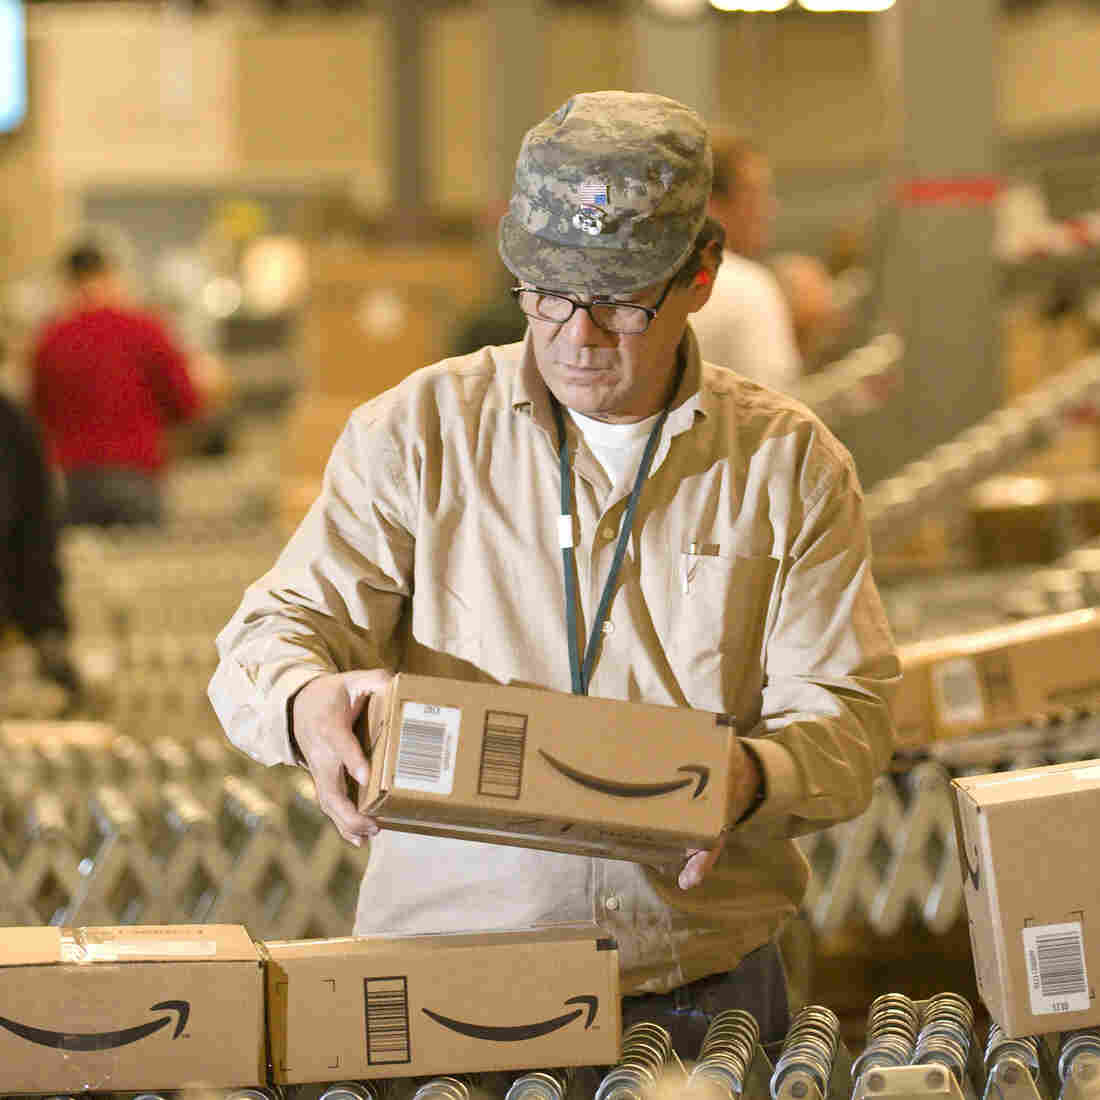 For New Jersey Shoppers, No More Sales Tax Holiday On Amazon